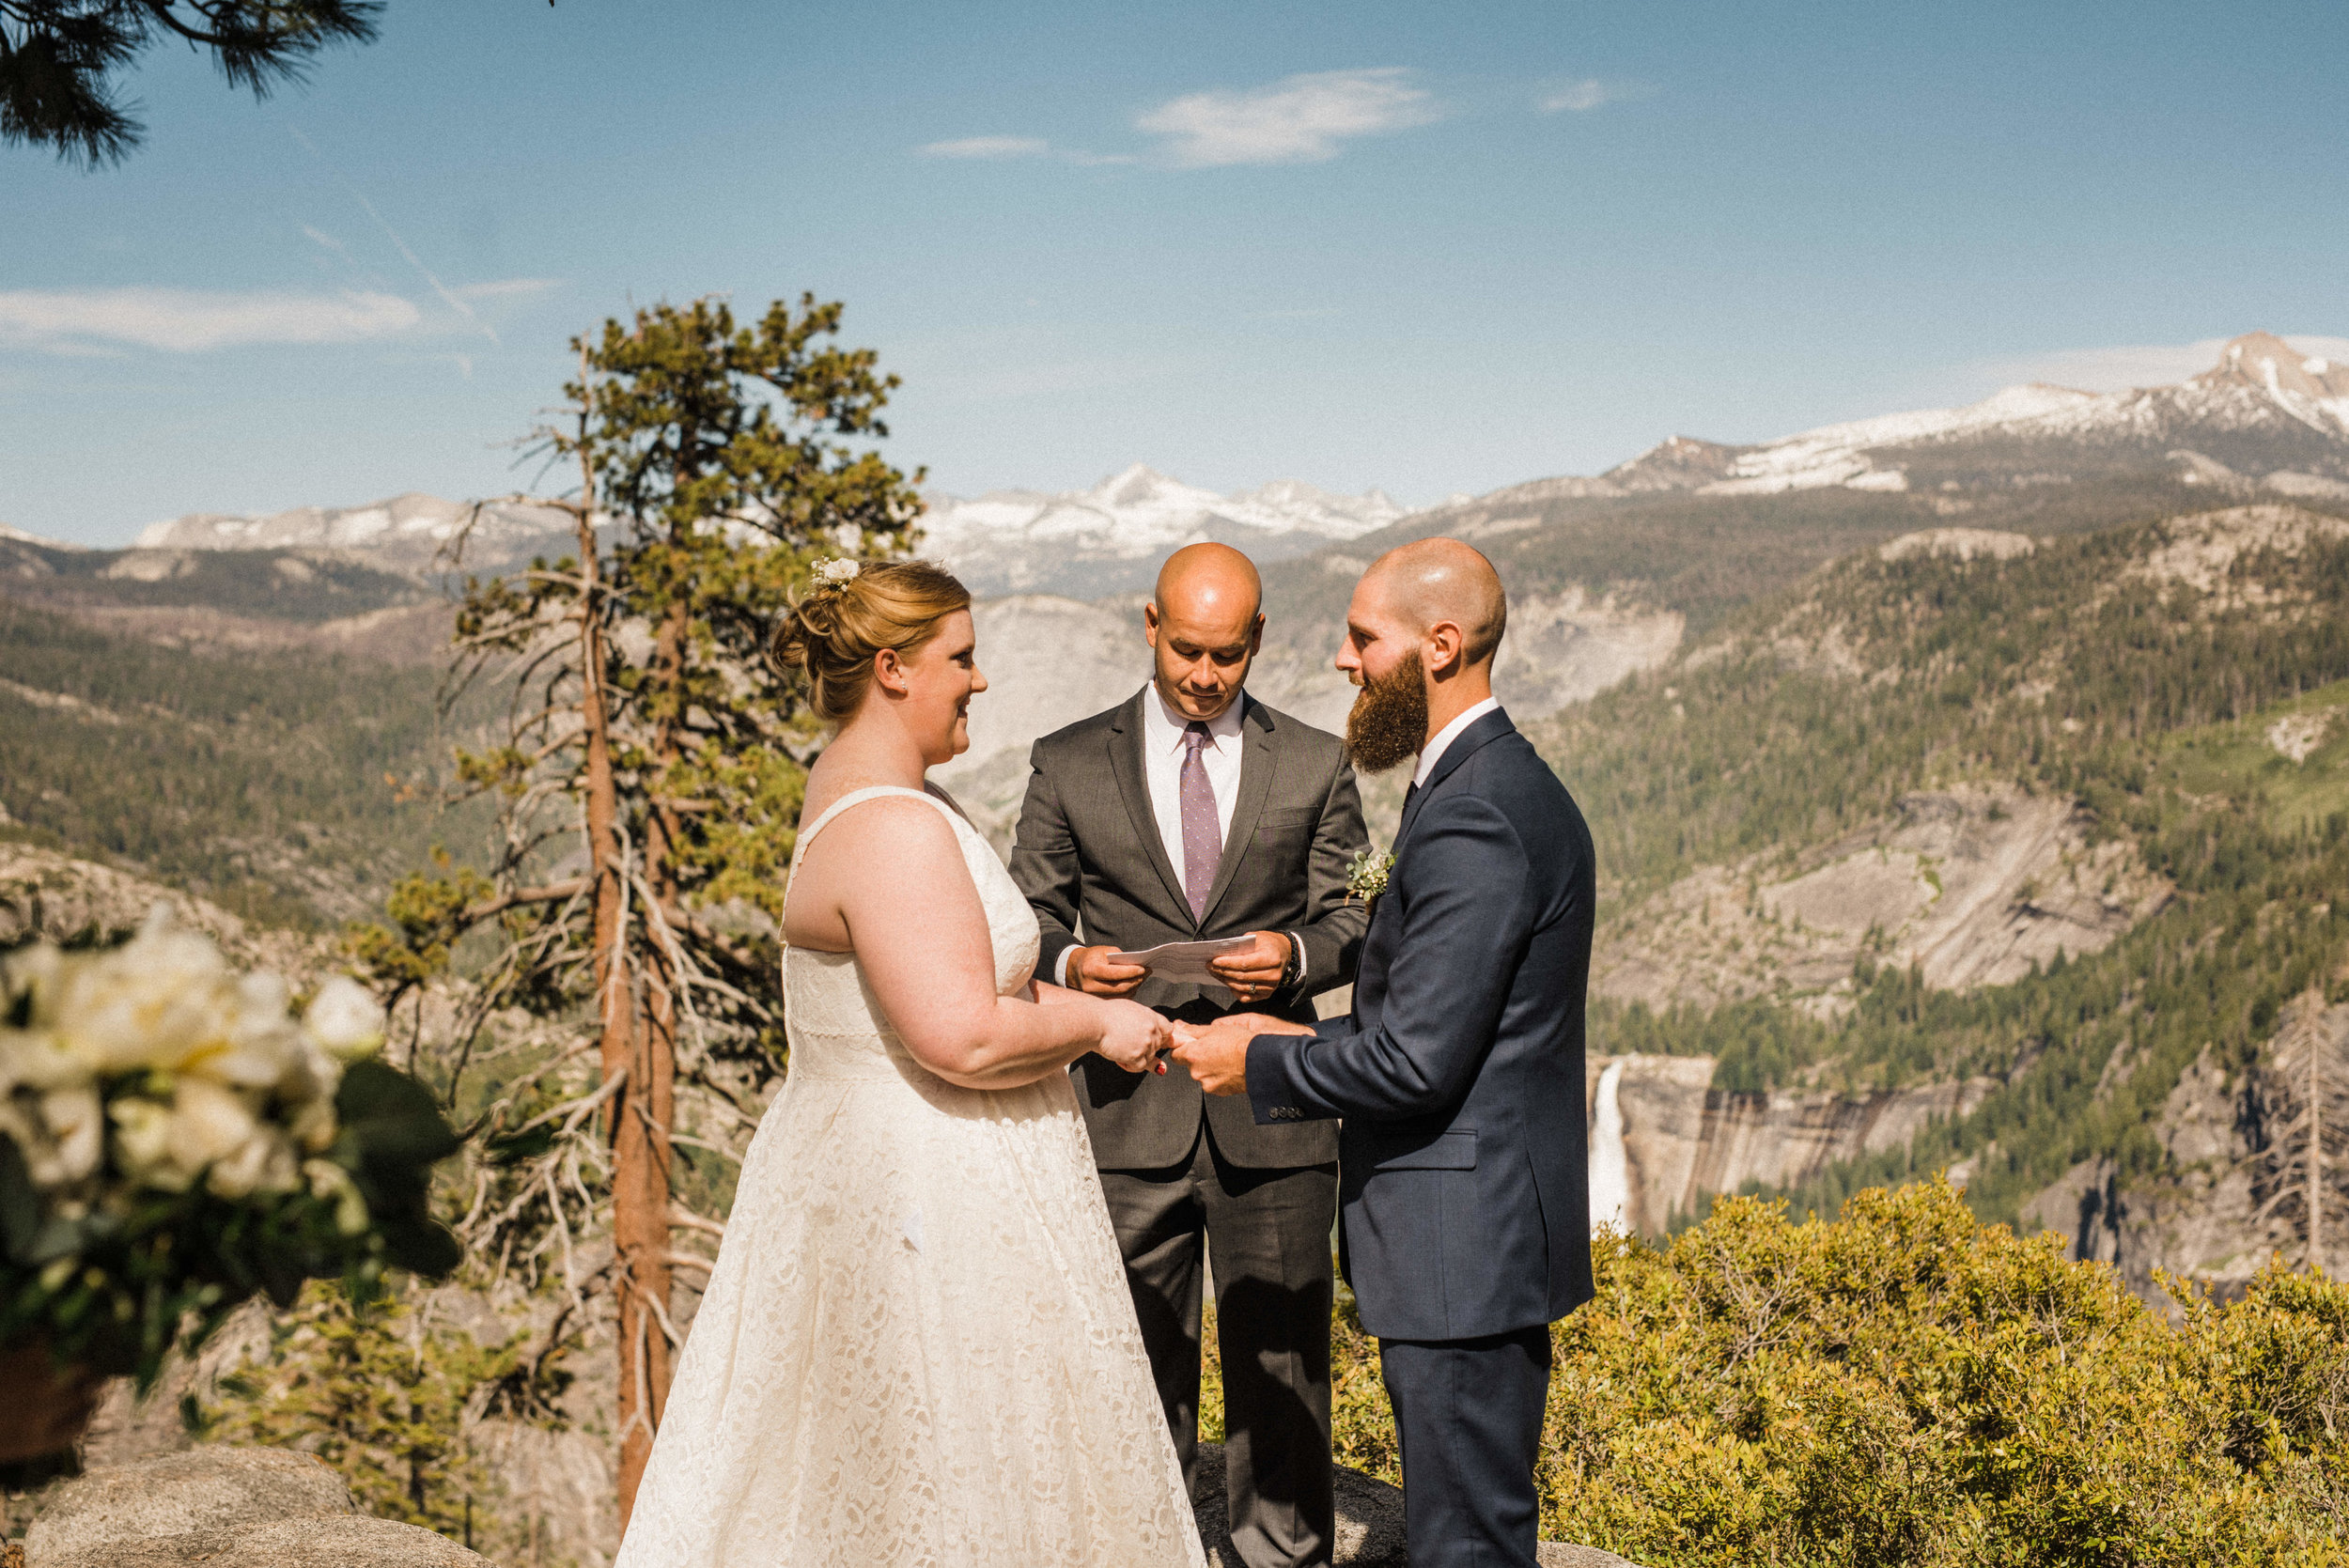 Elopement Ceremony at Glacier Point in Yosemite